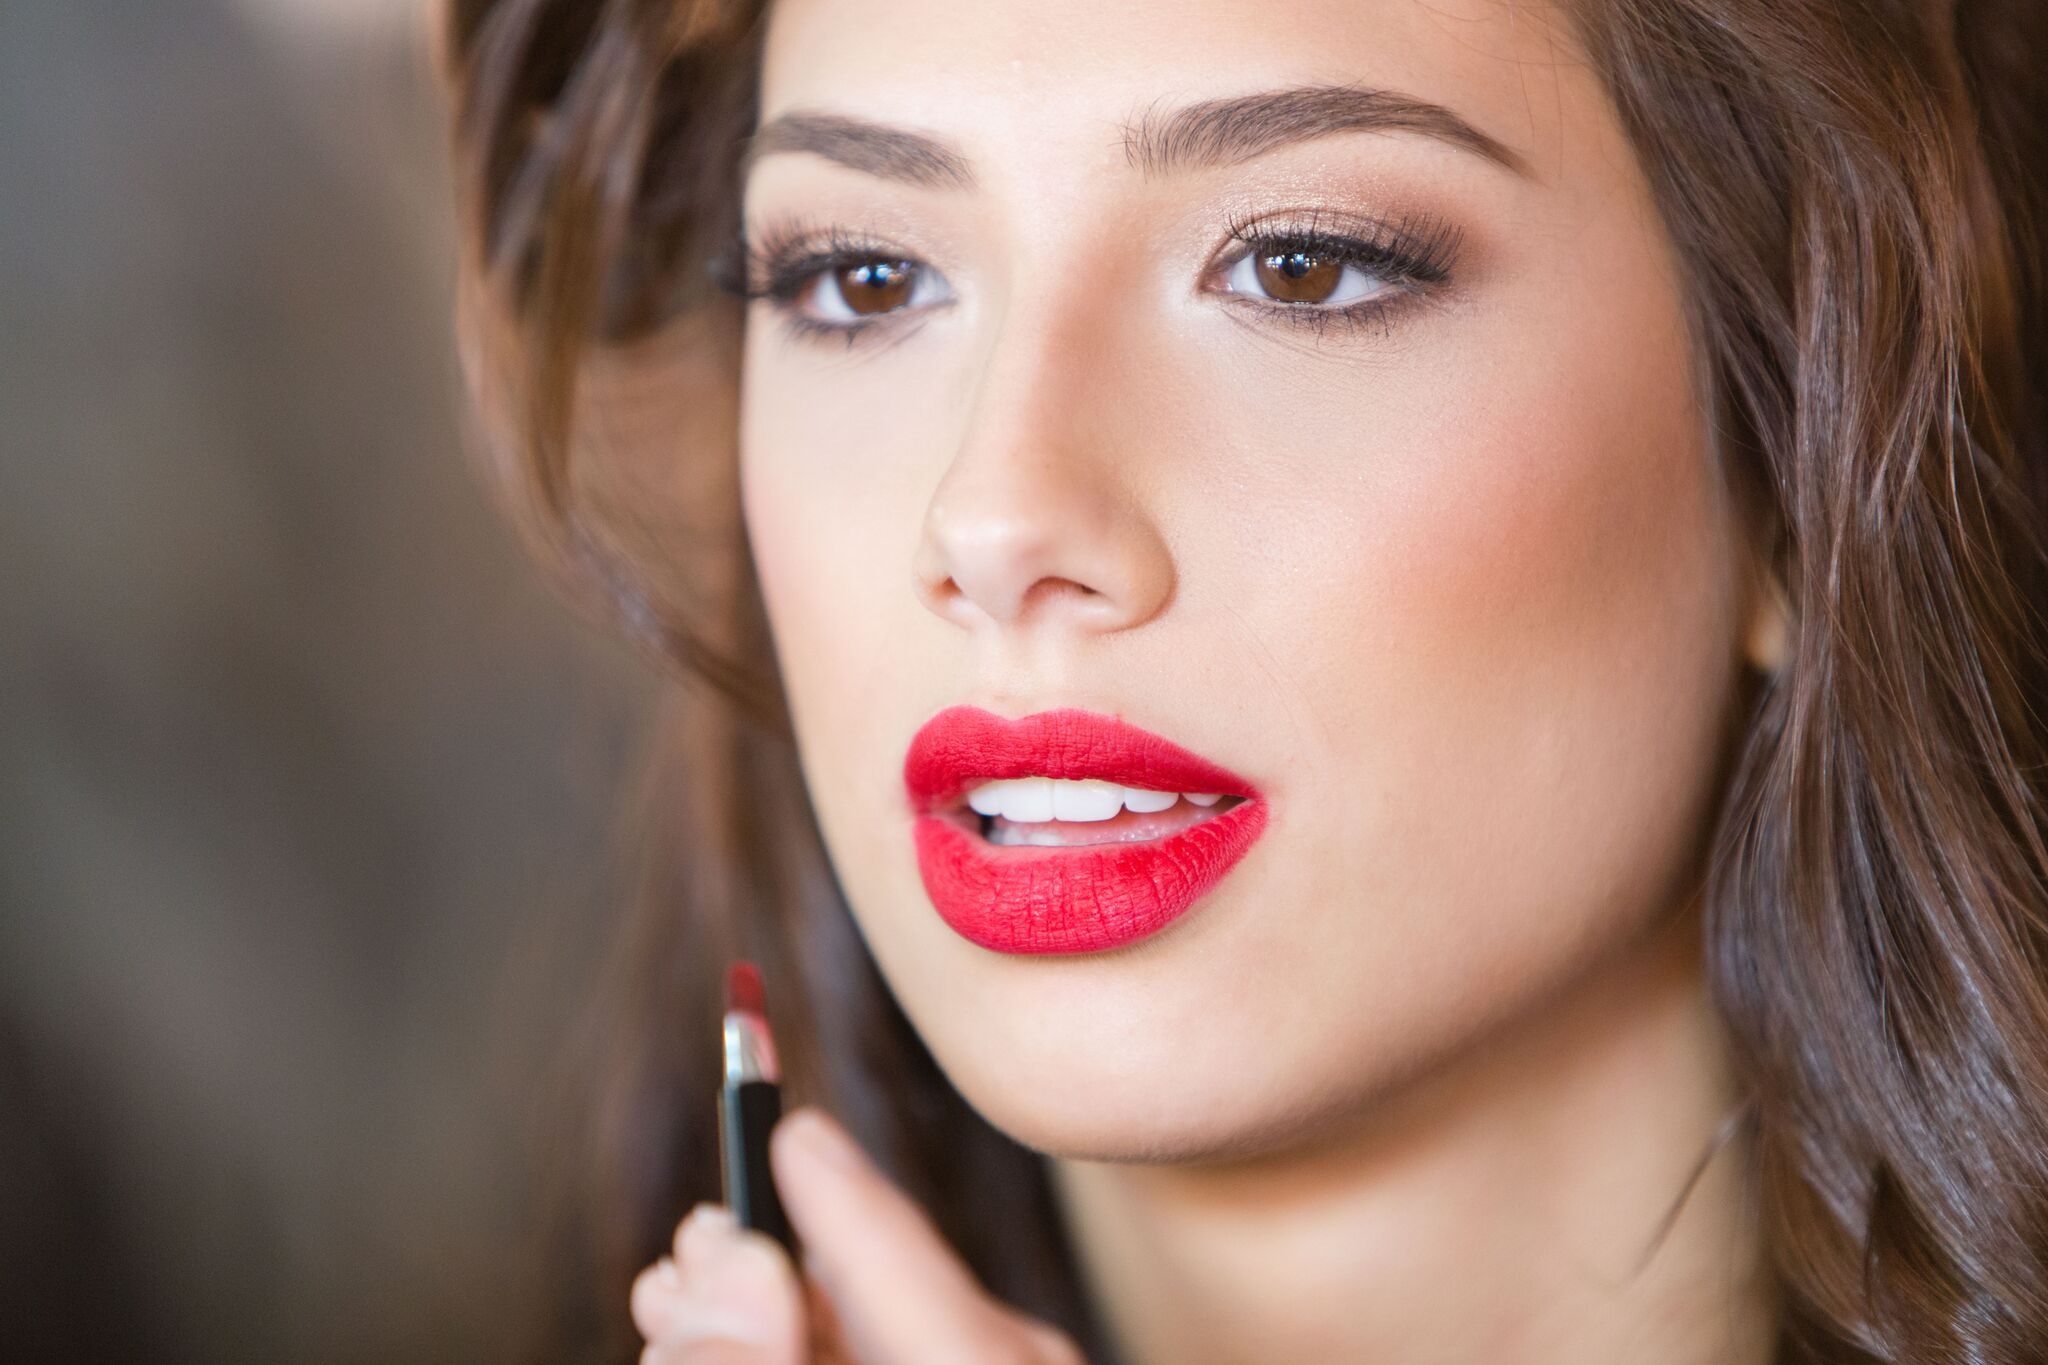 MAC Retro Matte Lipstick in Ruby Woo was the most popular red lip among the candidates.